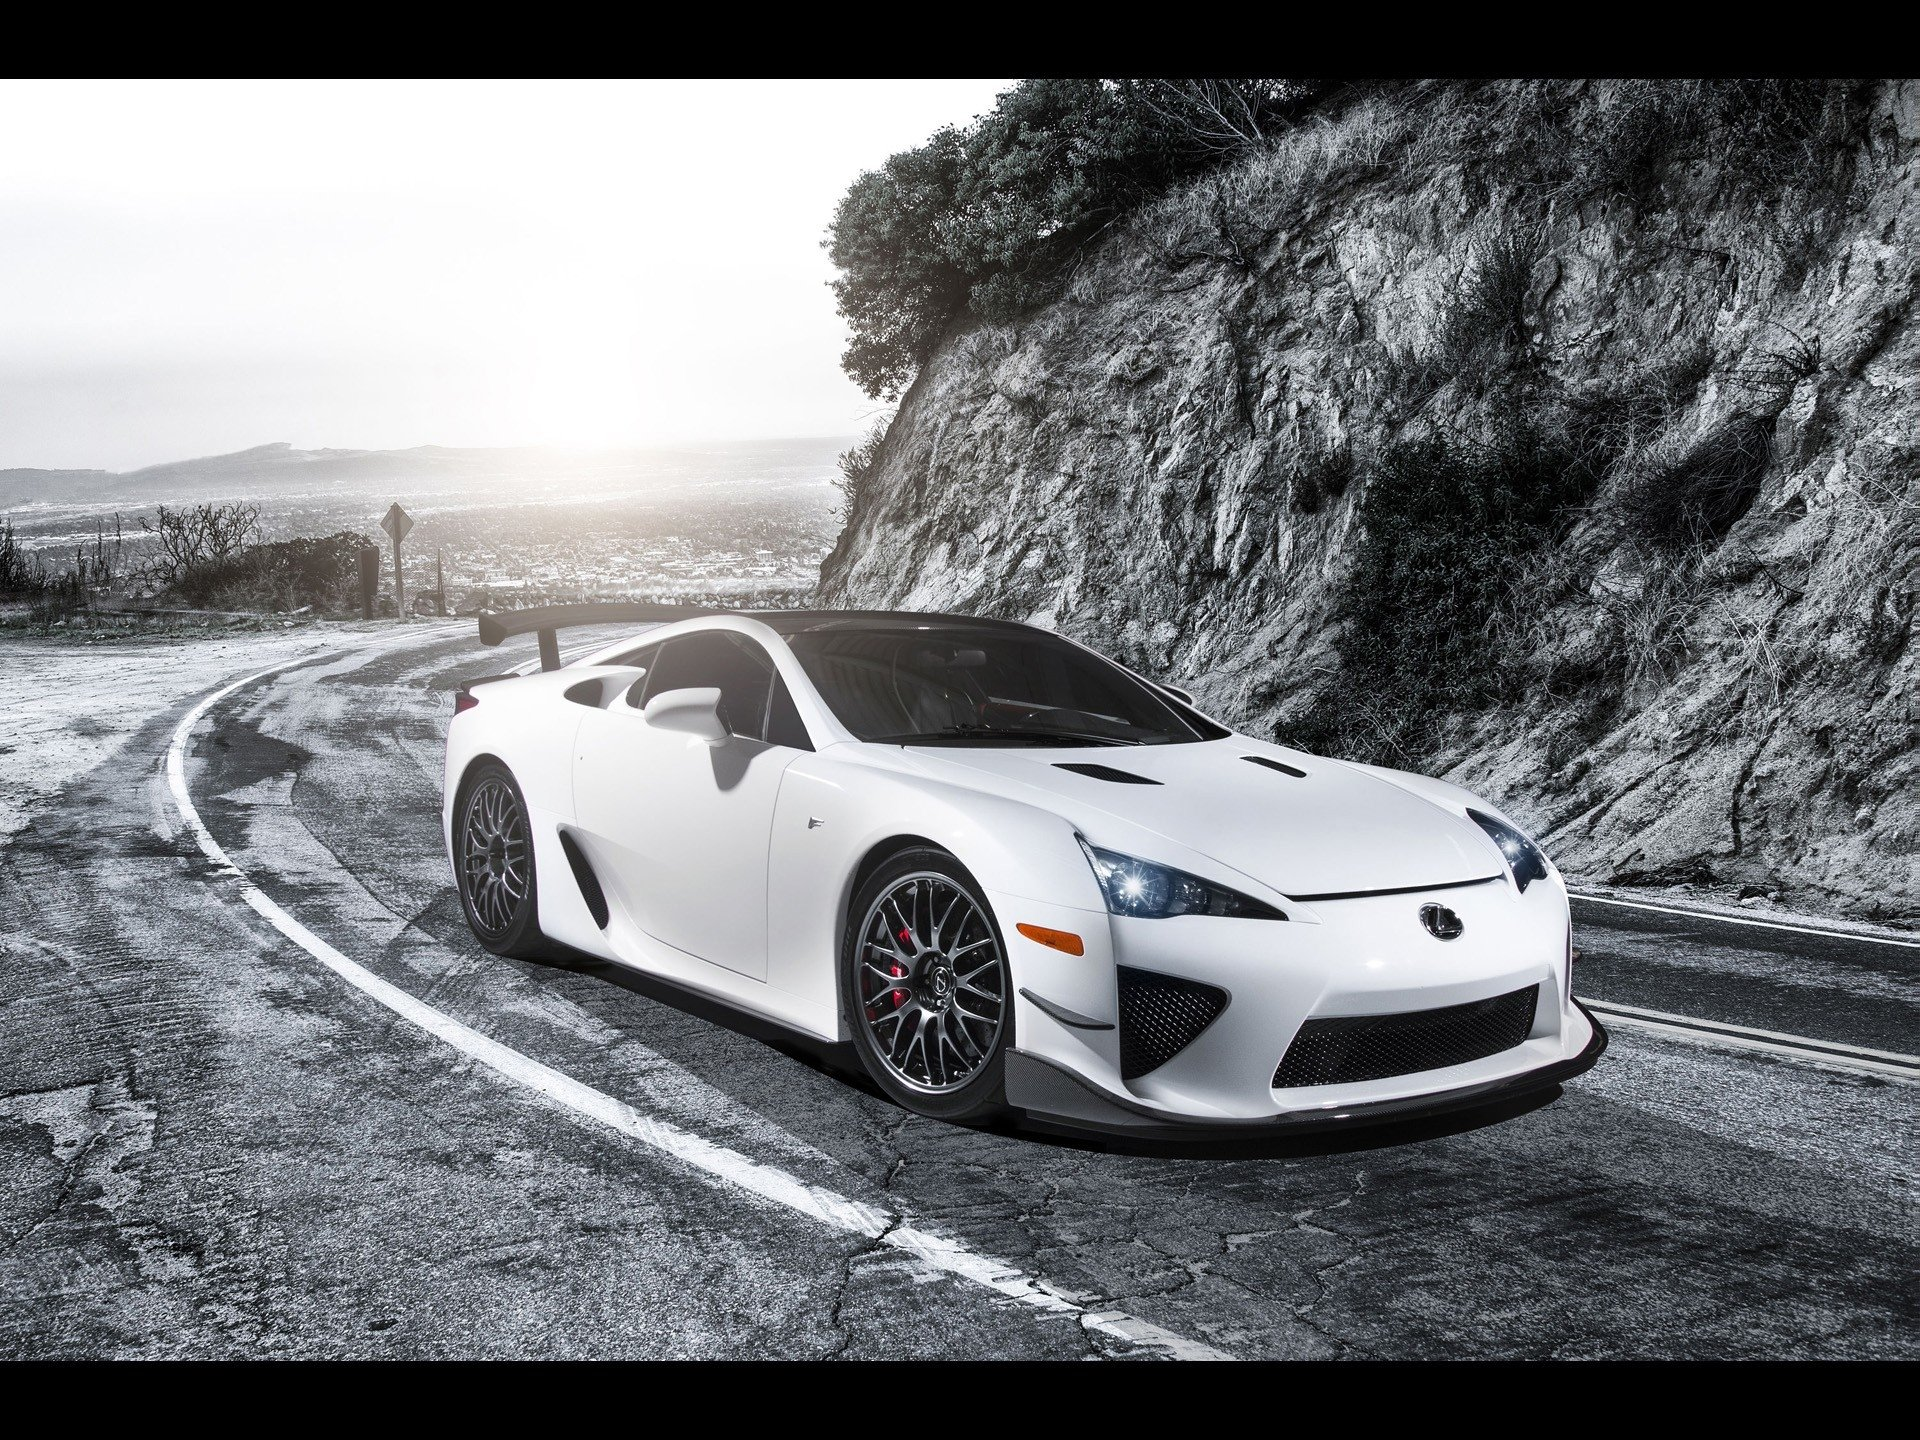 41 Lexus Lfa Hd Wallpapers Background Images Wallpaper Abyss Page 2